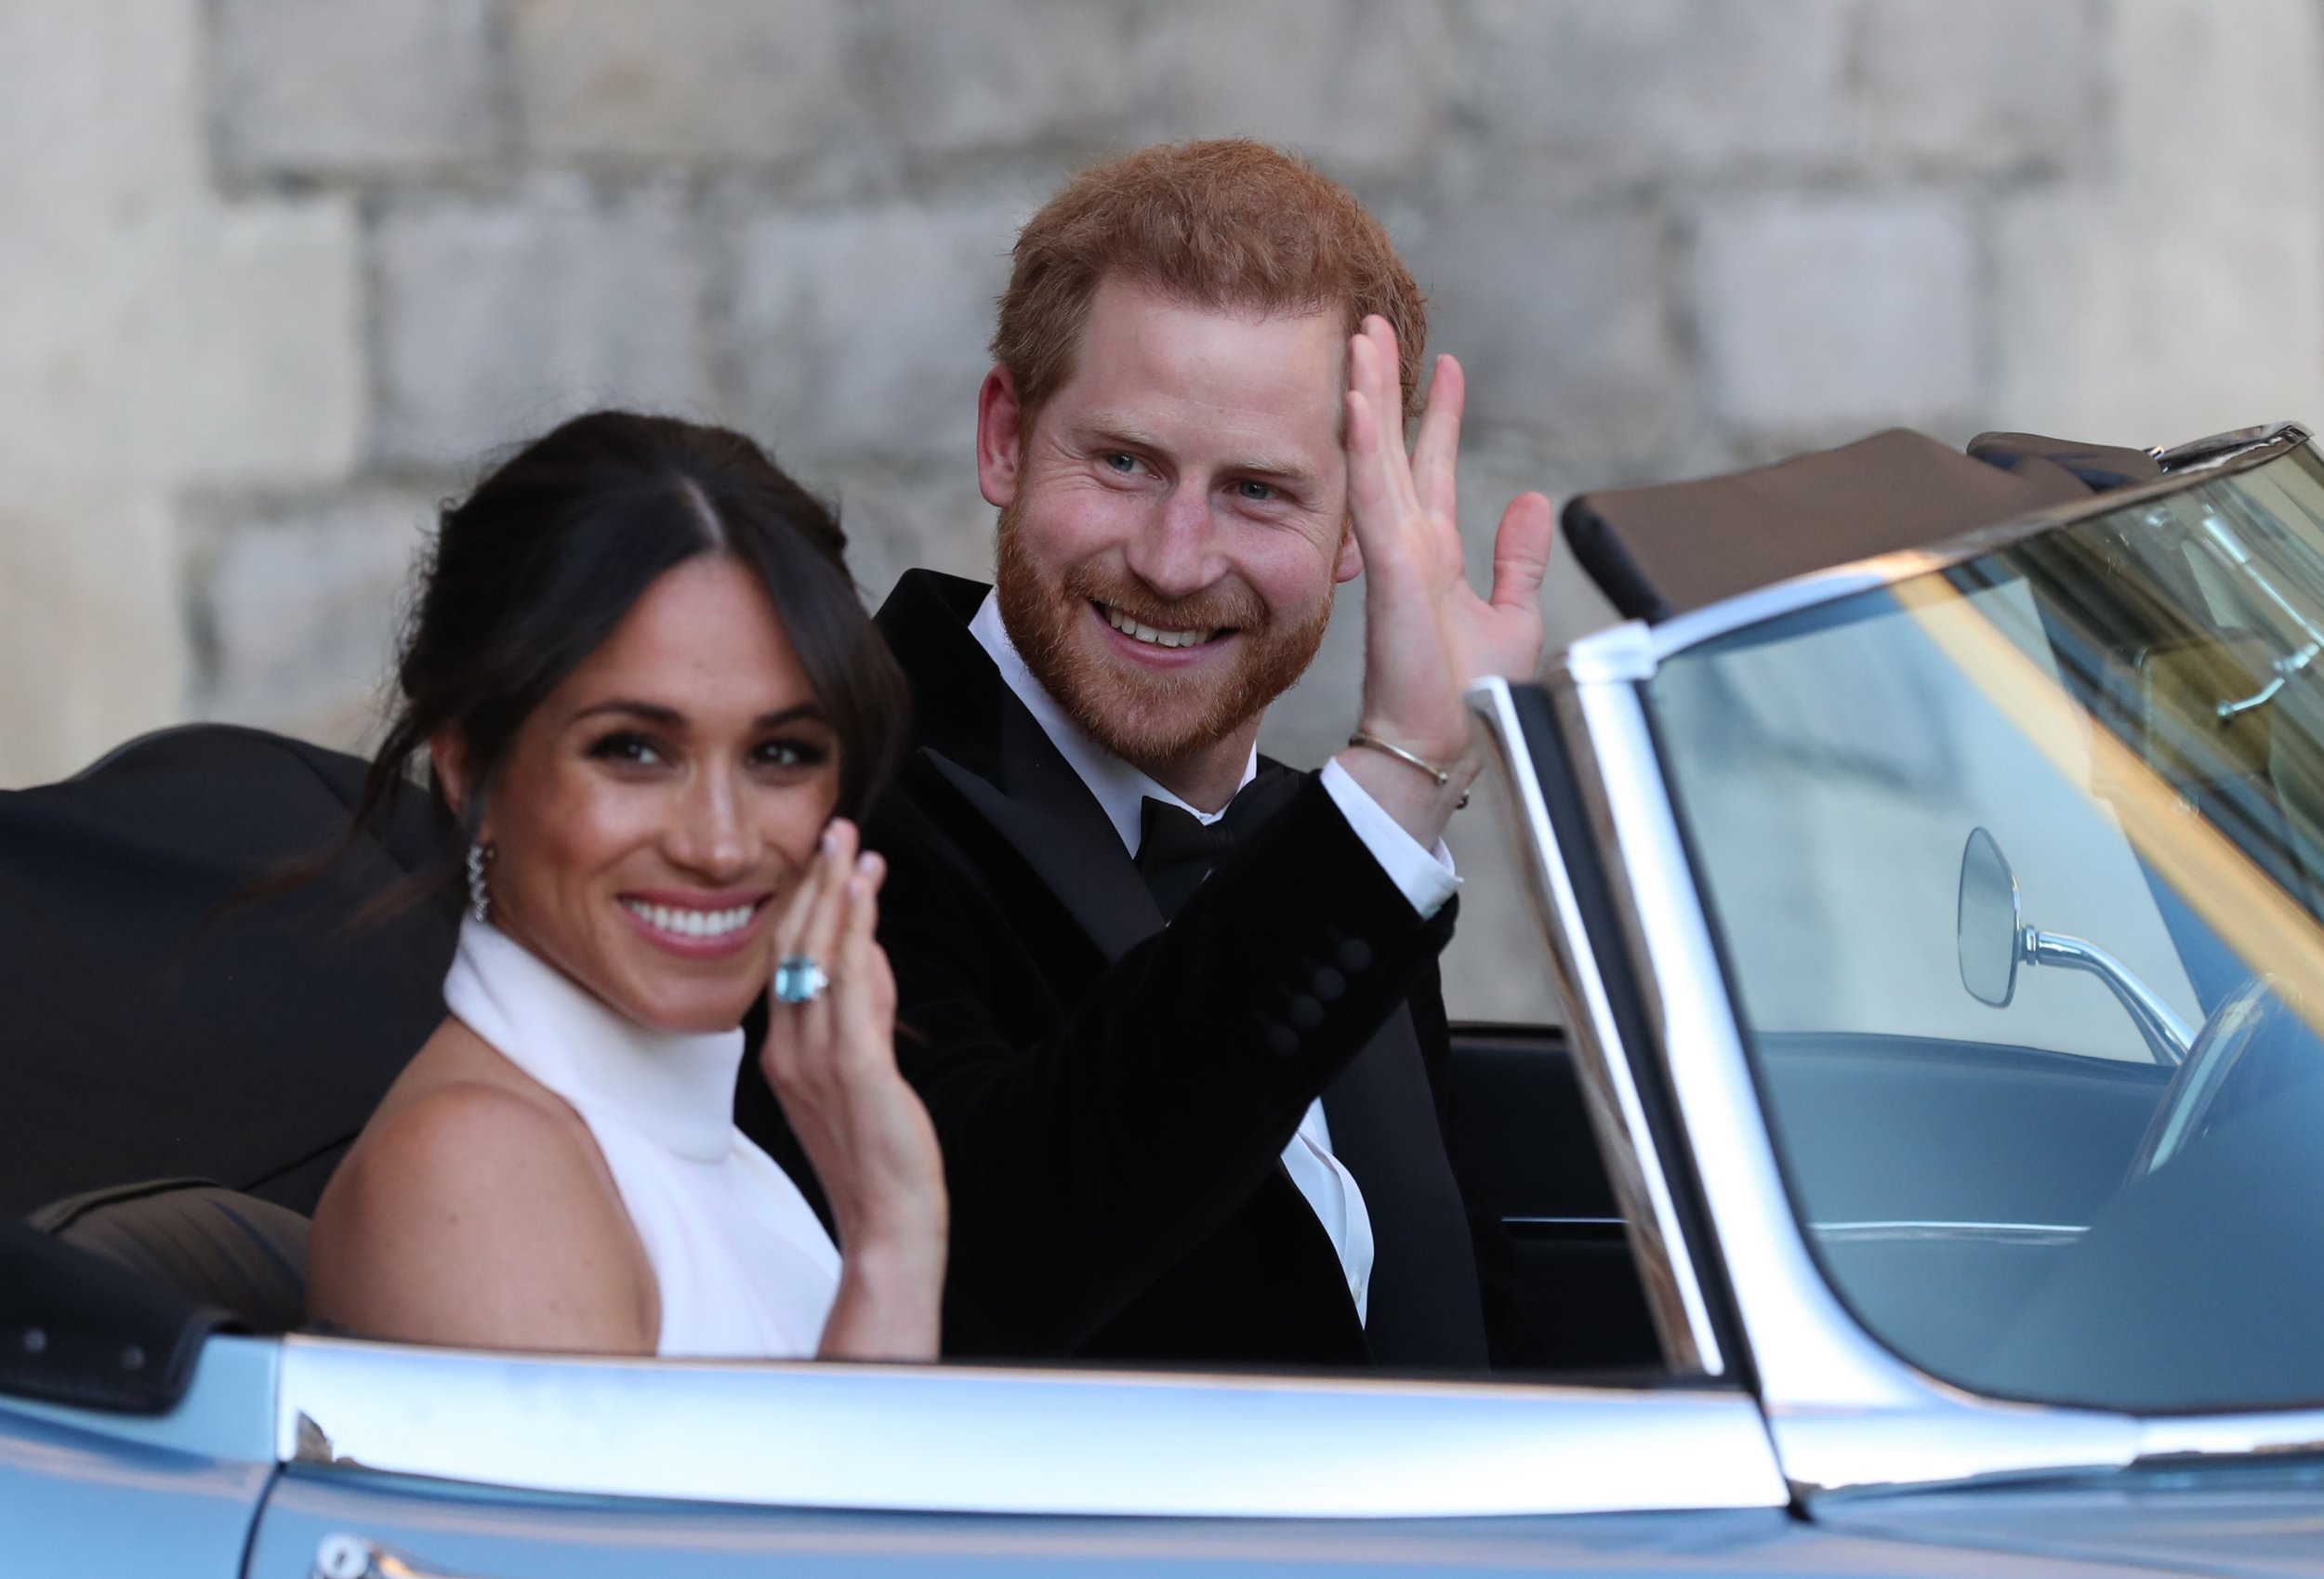 Prince Harry and Meghan Markle to visit Dublin in July to learn about Ireland